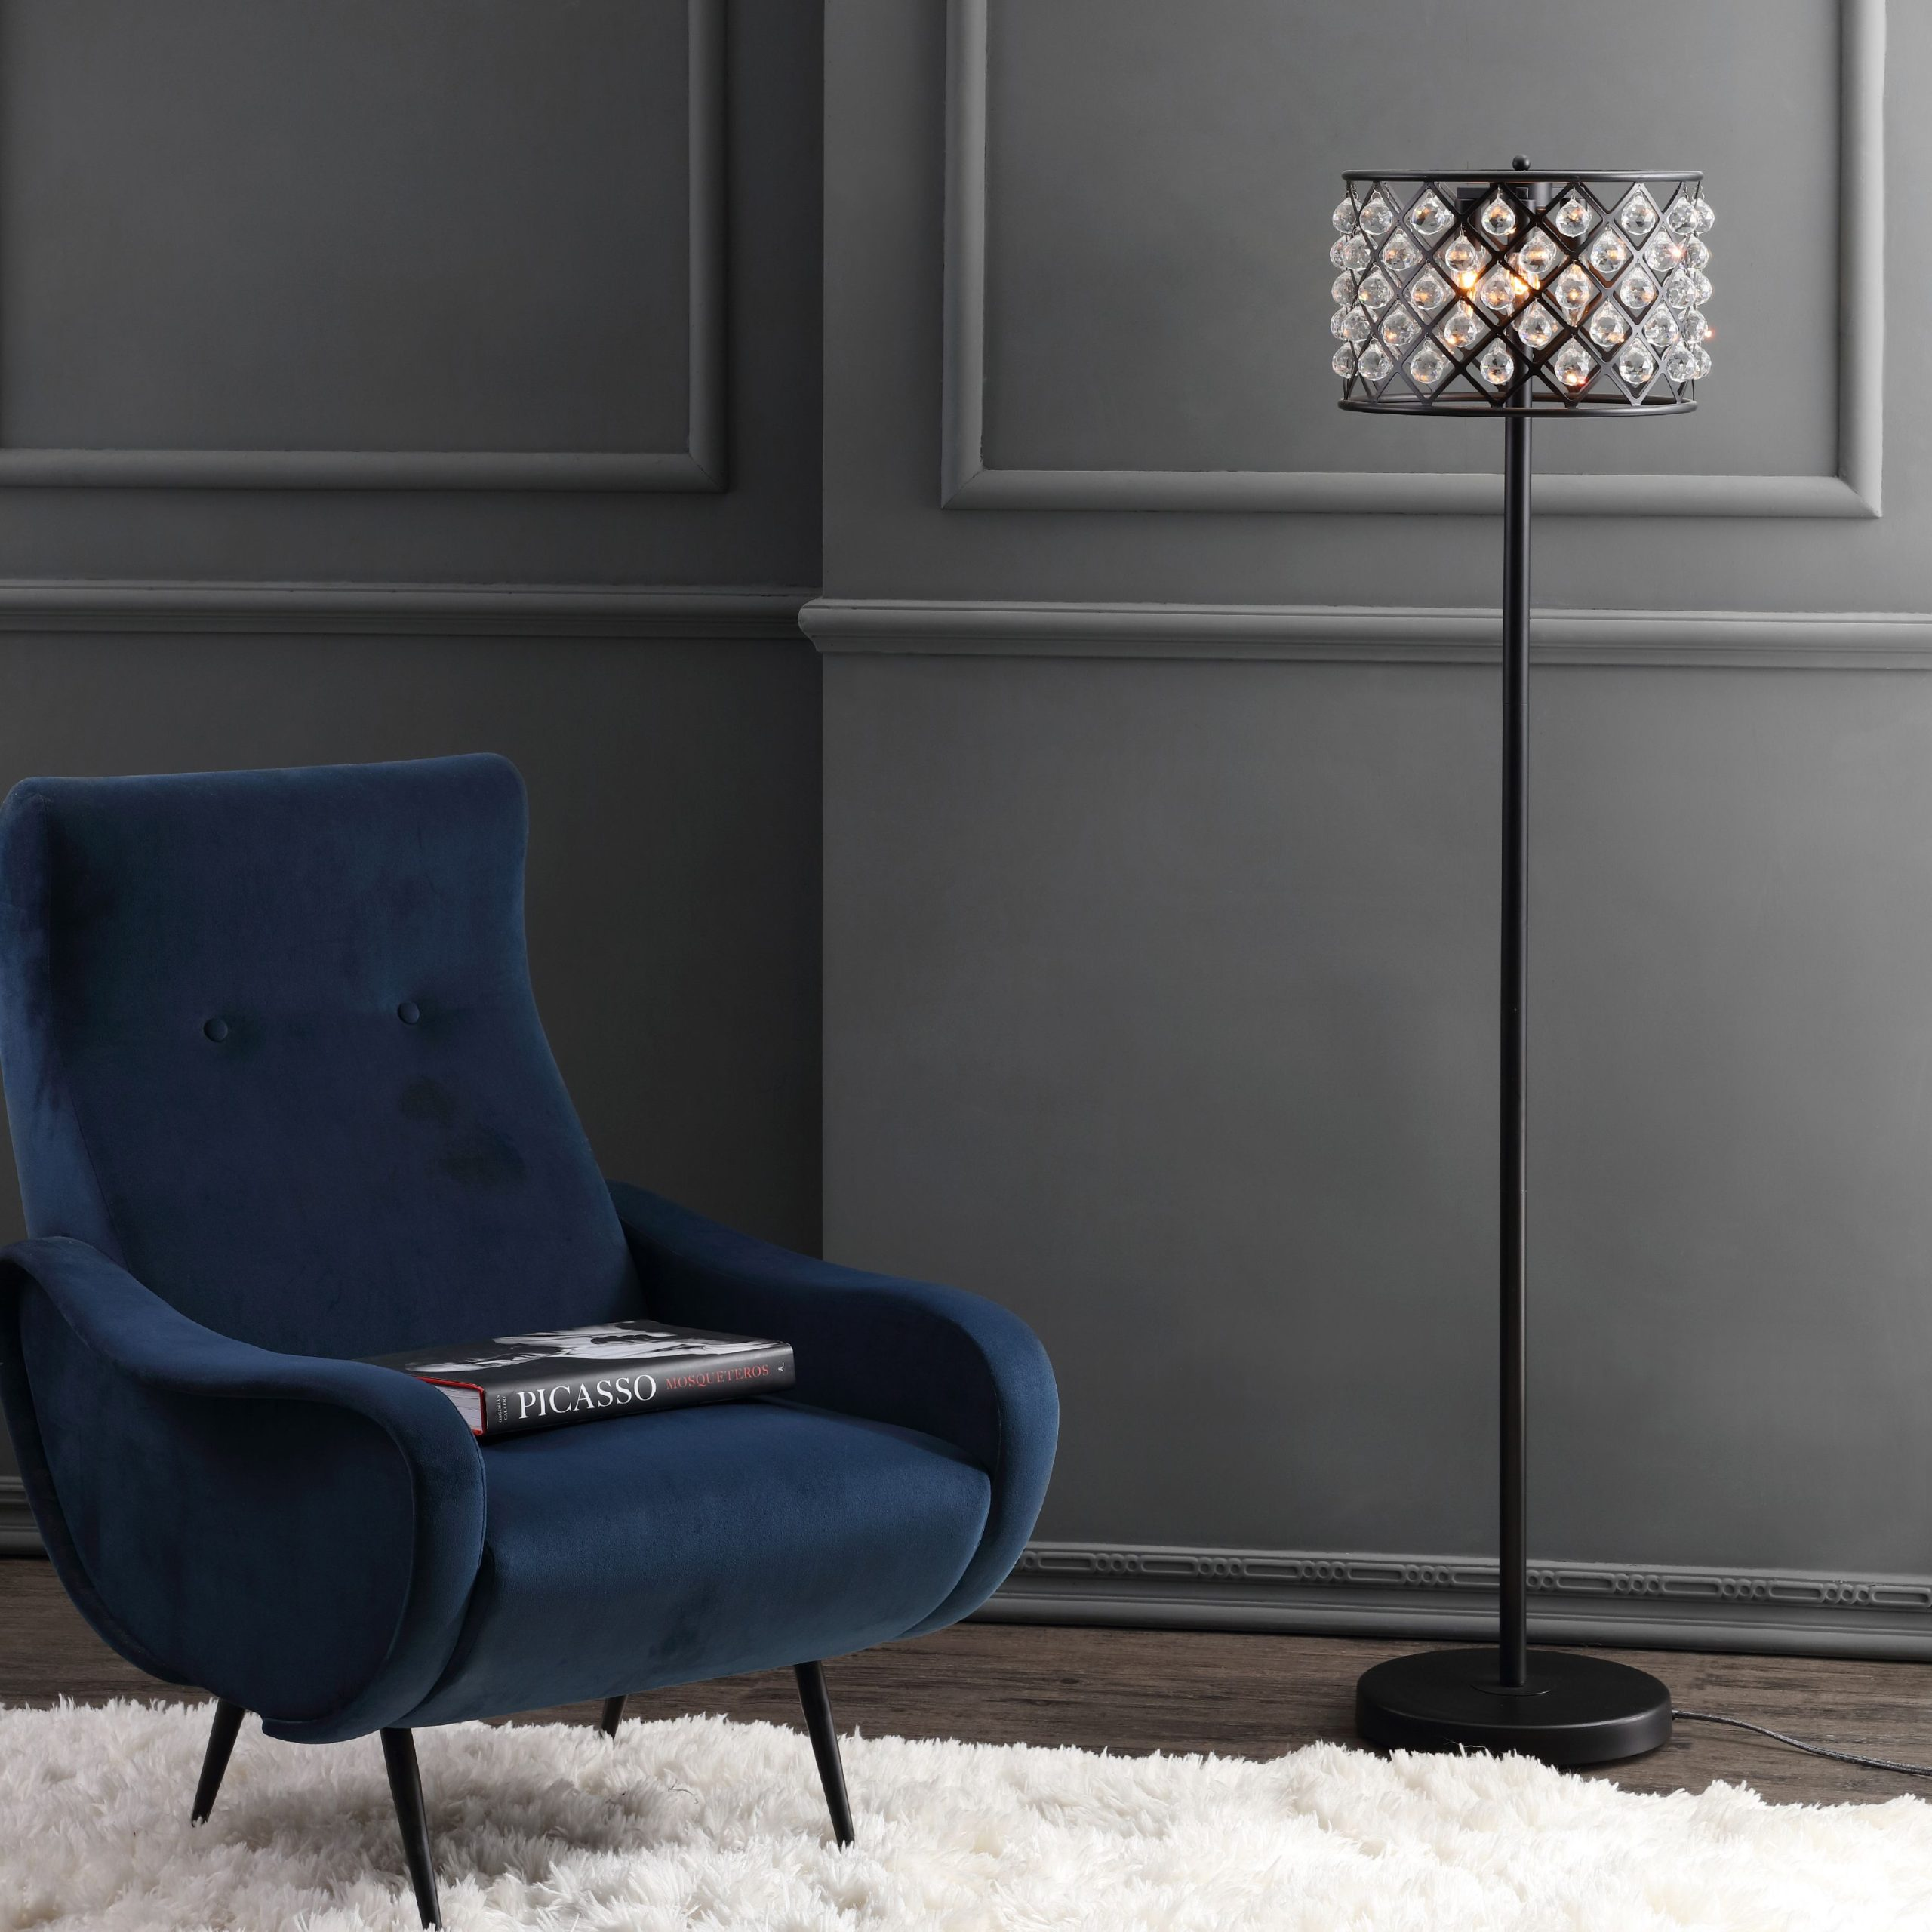 JONATHAN-scaled 15 Unique Artistic Floor Lamps to Light Your Bedroom